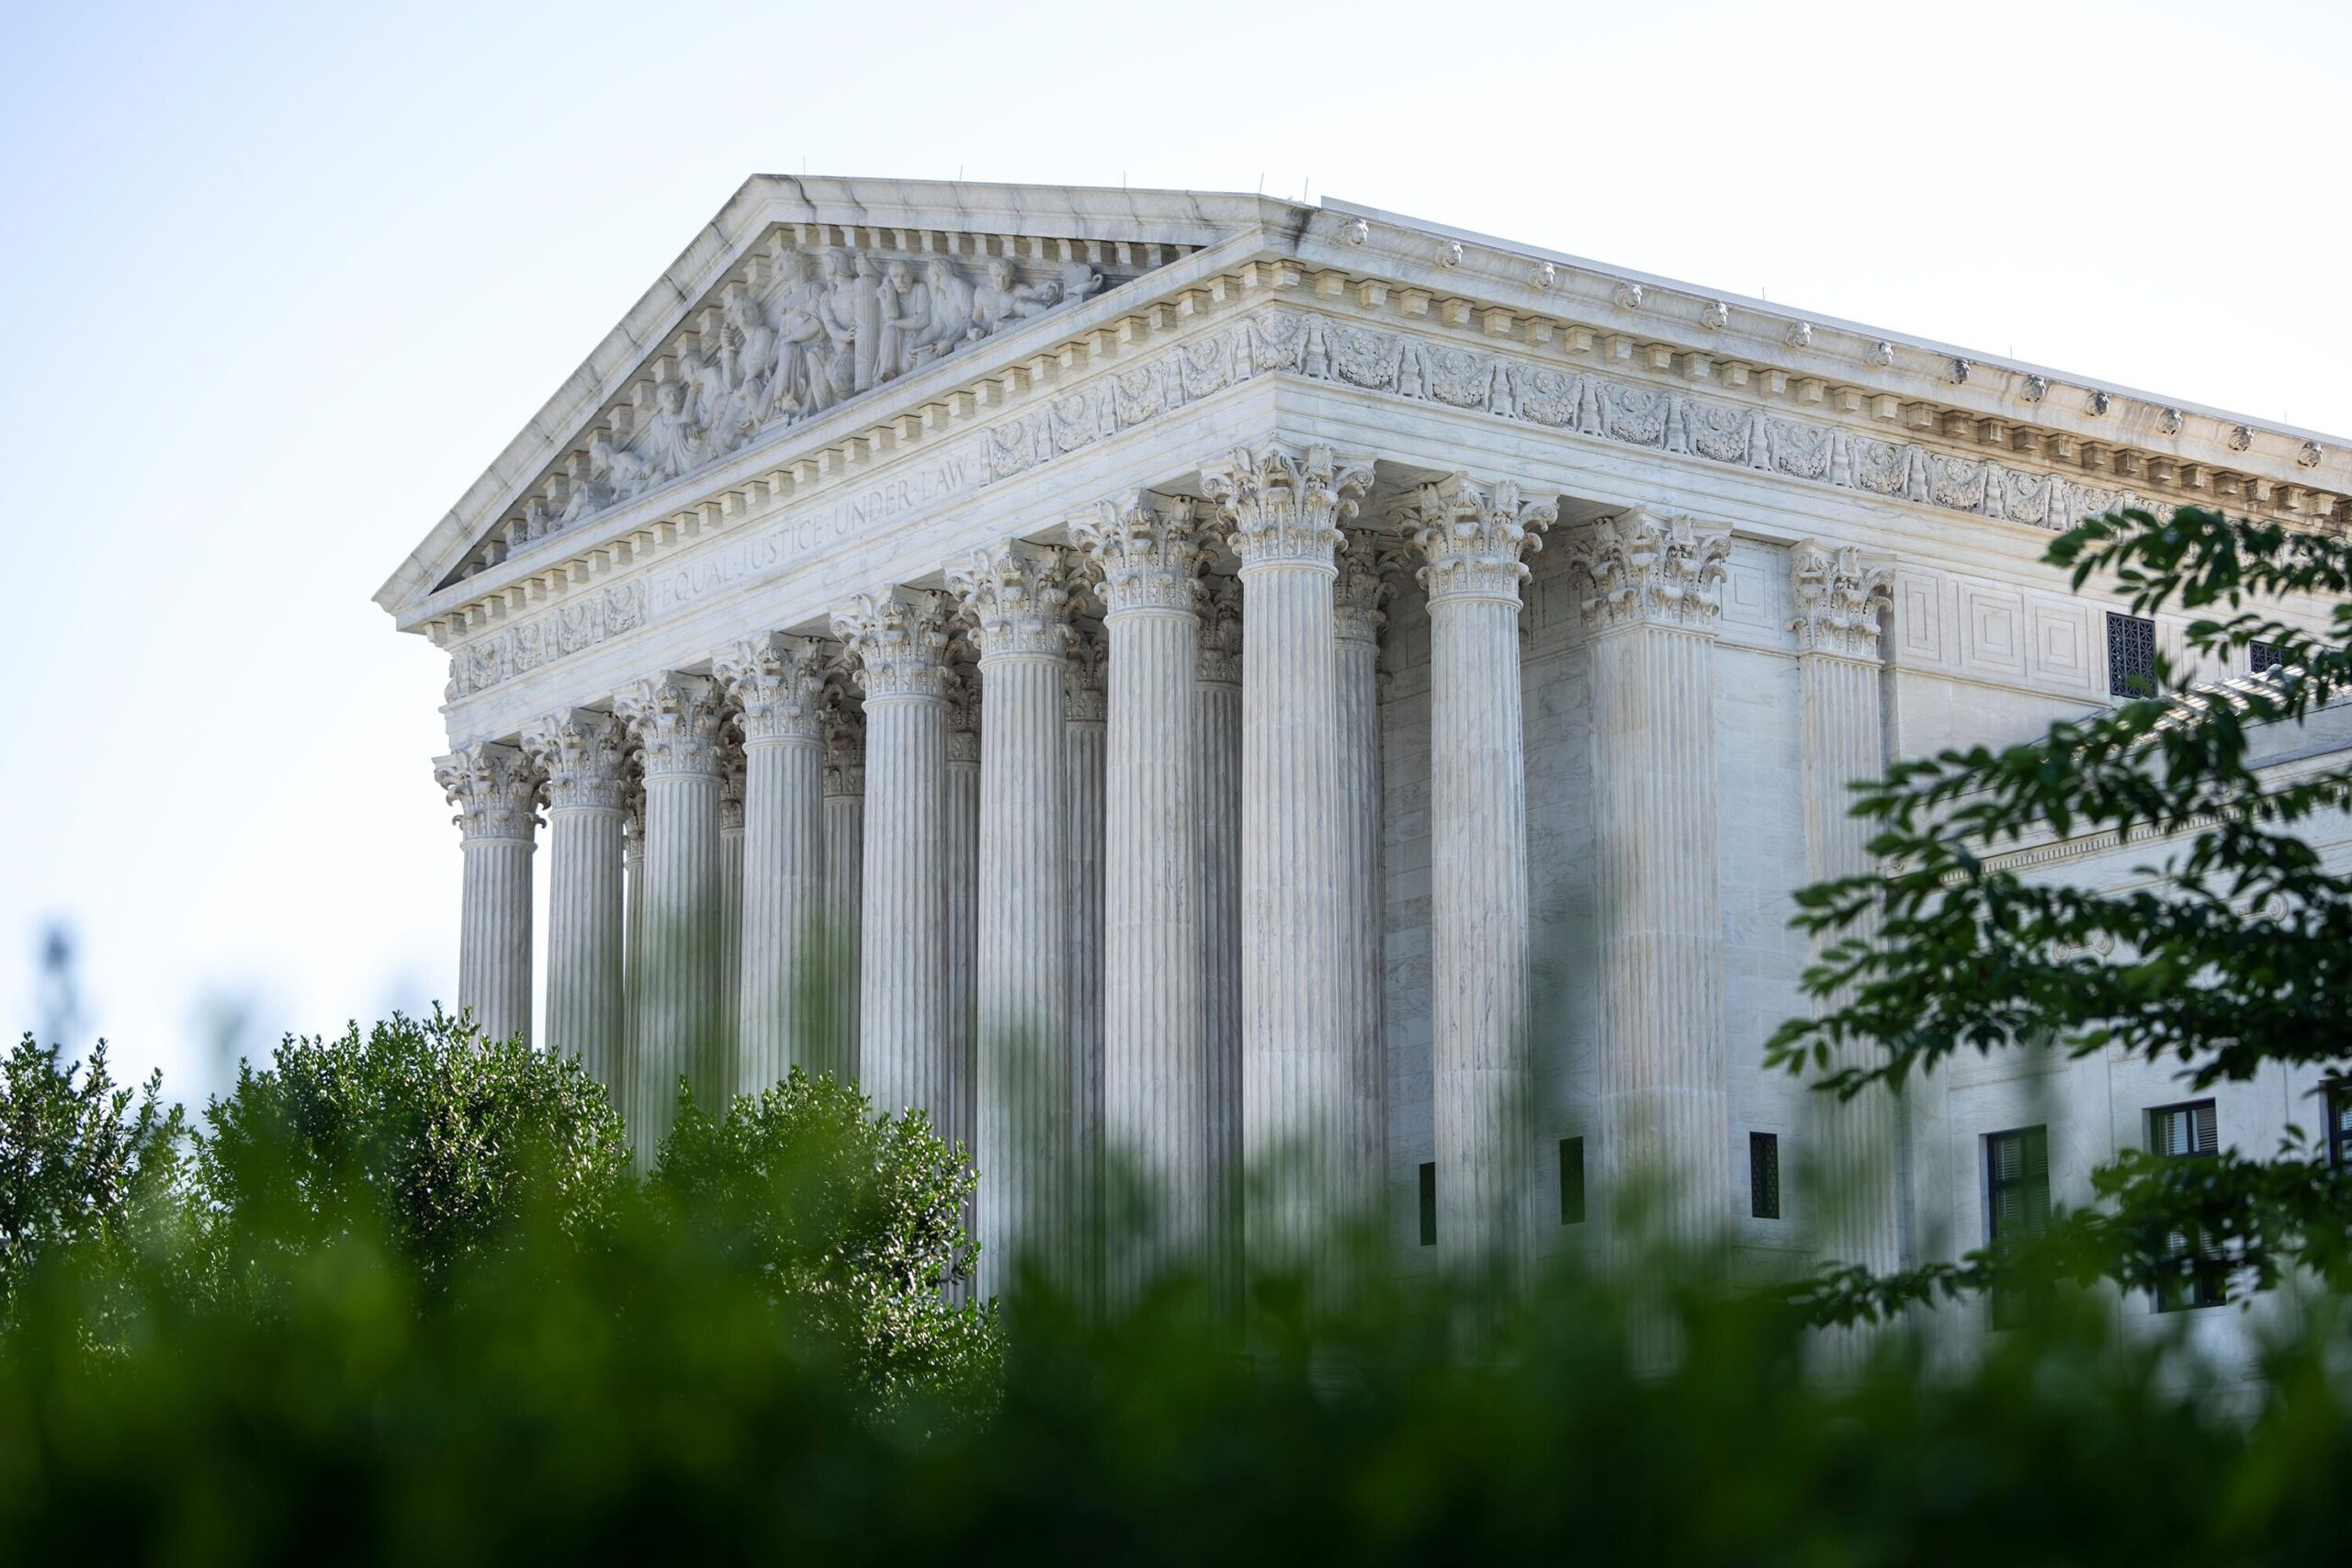 <i>Drew Angerer/Getty Images</i><br/>A church in Maine is asking the Supreme Court to block the state from enforcing or reinstating any Covid-related restrictions that the house of worship says would violate its religious liberty rights under the Constitution.